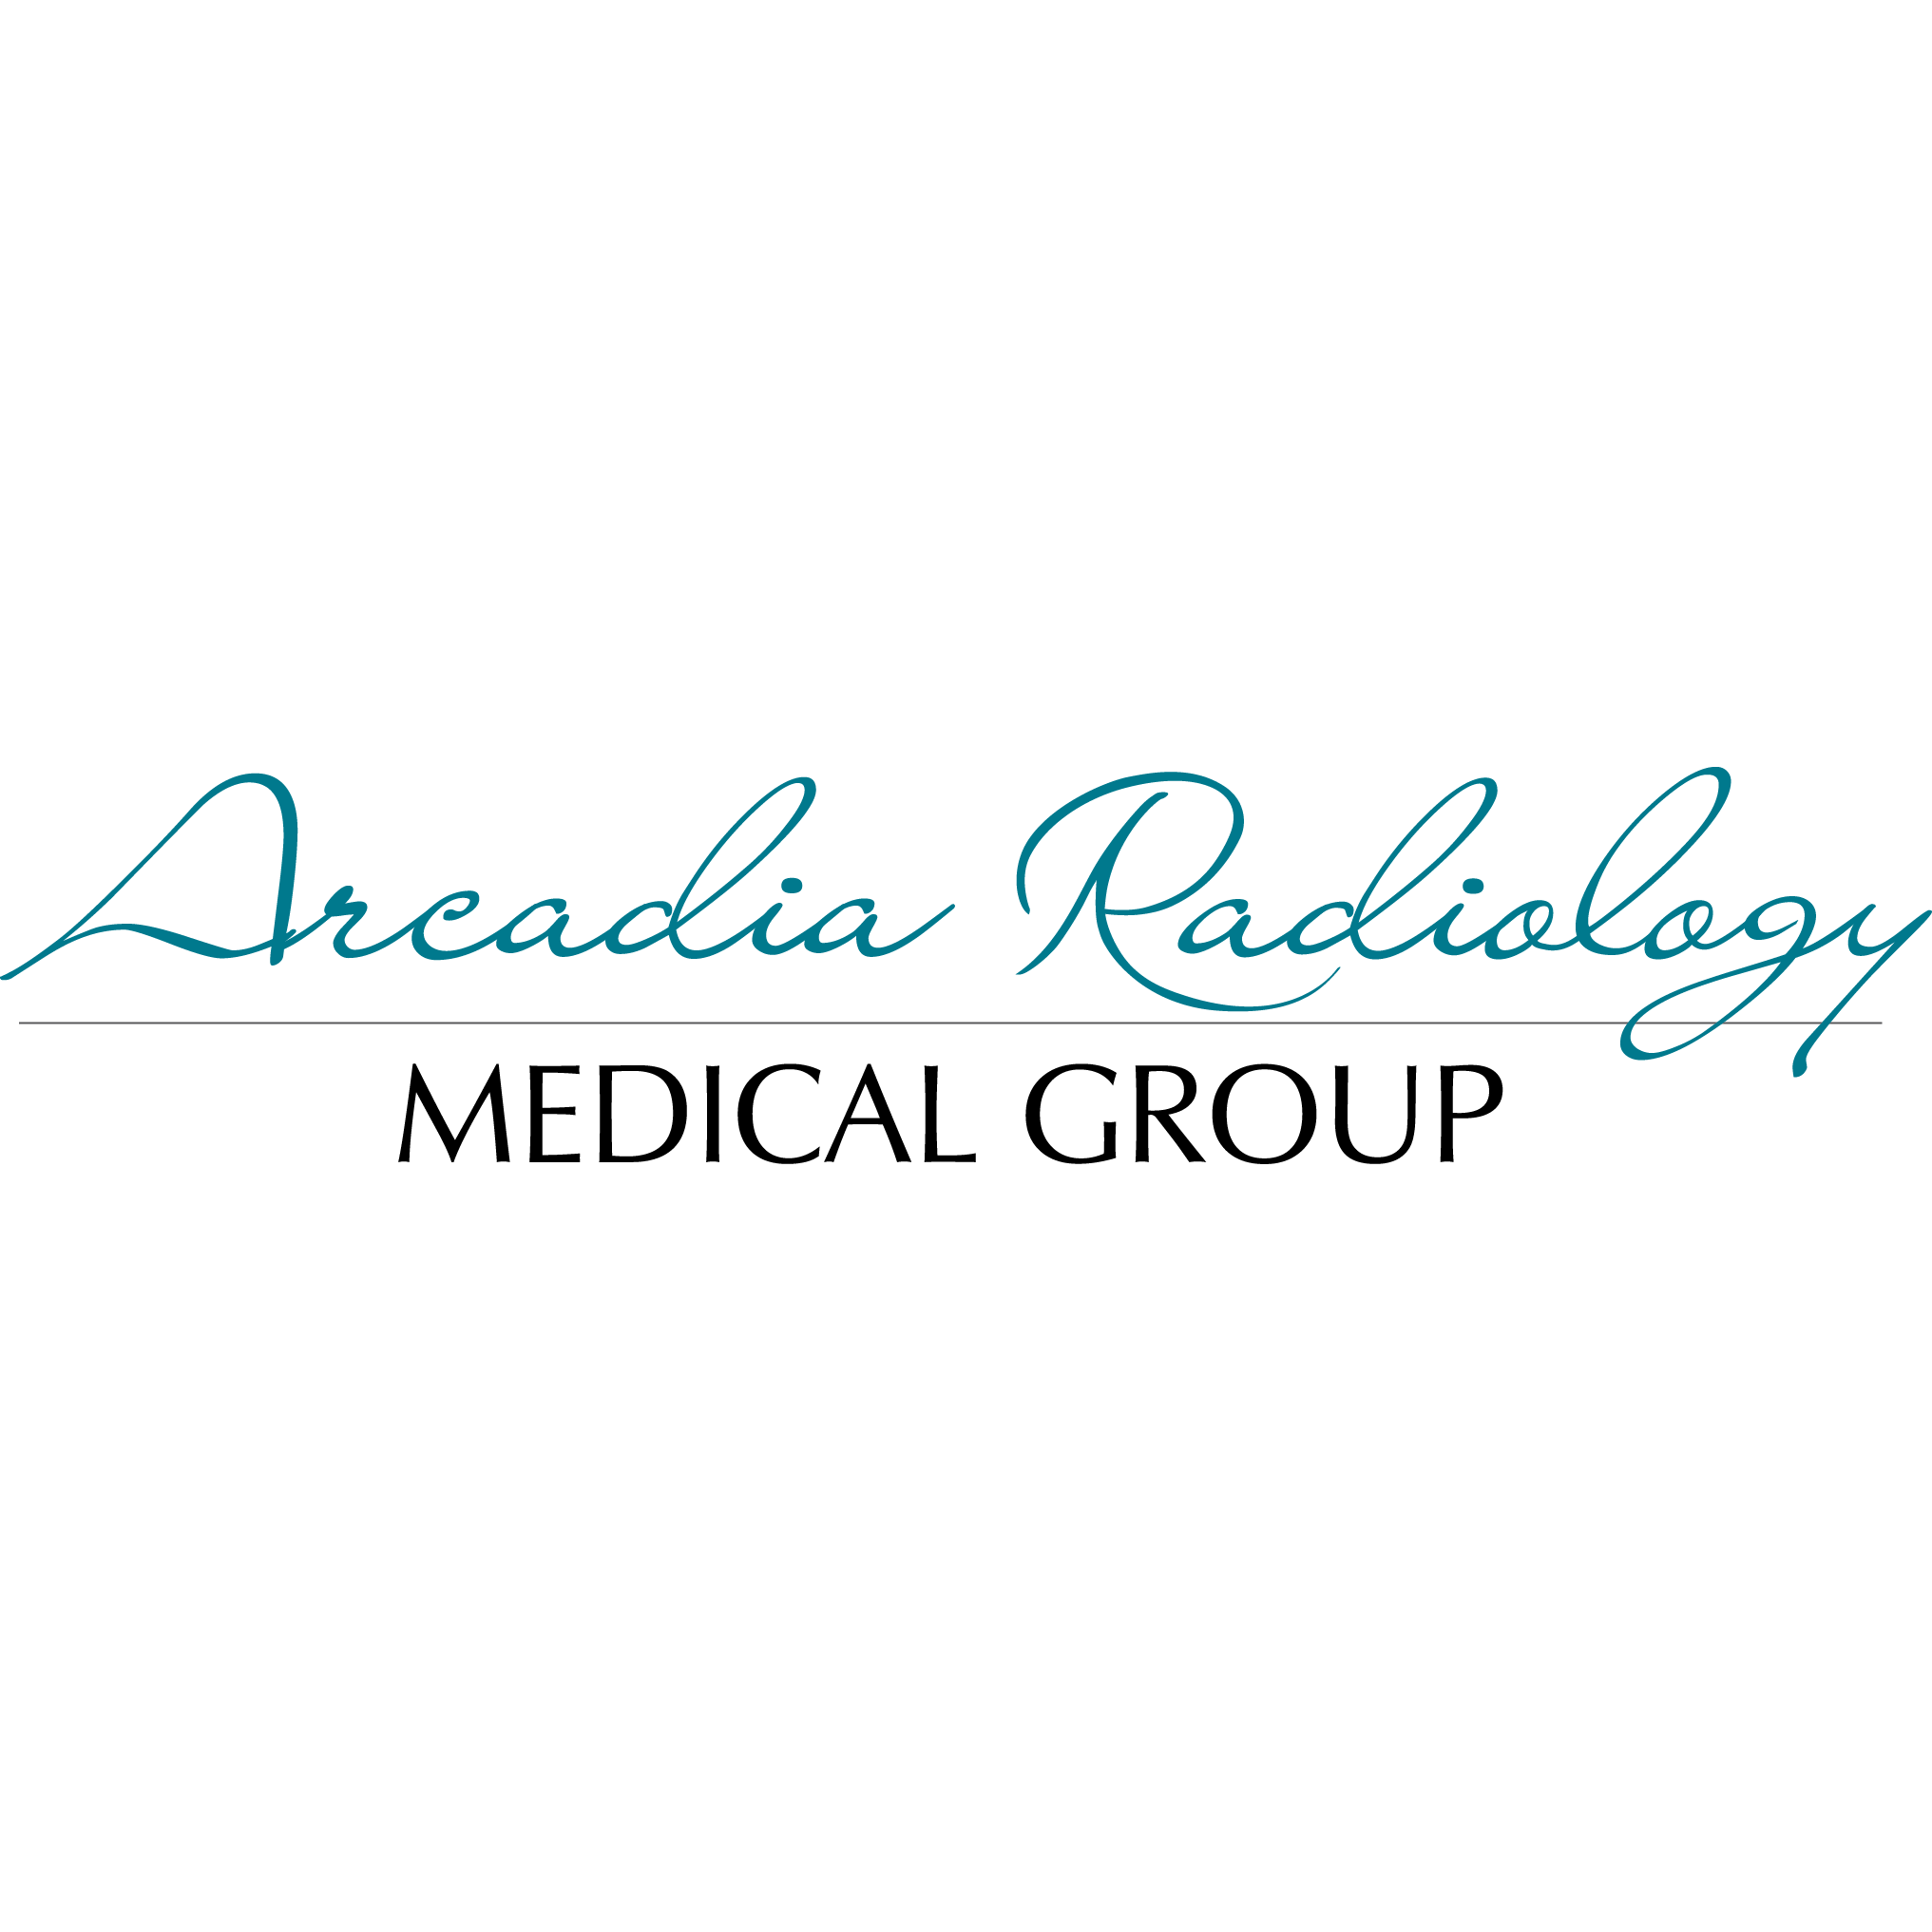 radiology medical imaging and radiologist diagnostic Diagnostic imaging all medical  diagnostic imaging & radiology  radiologic technologists offer diagnostic and interventional radiology services in a.